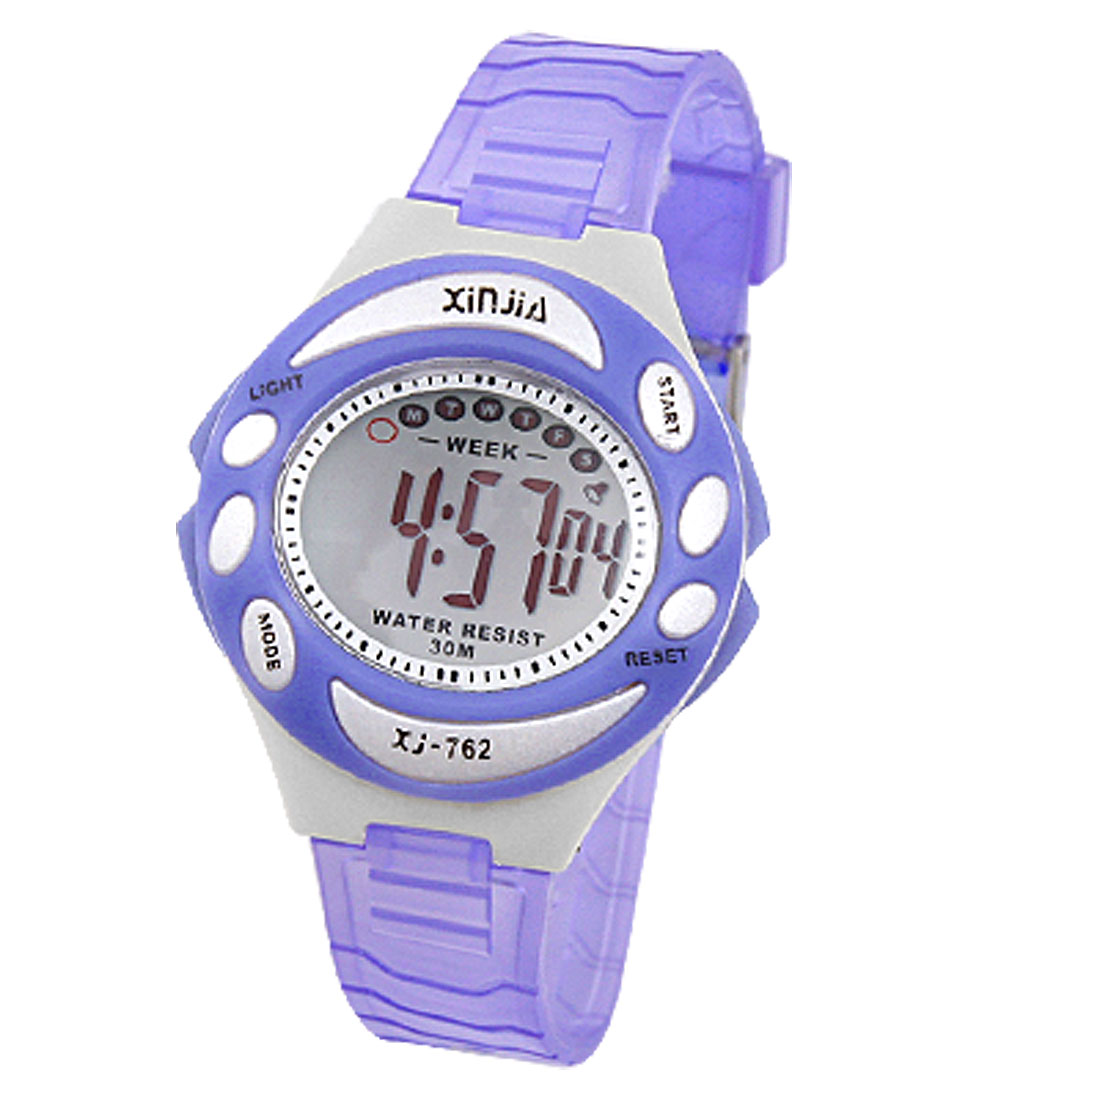 Unisex Adjustable Band Hourly Chime Sports Digital Watch